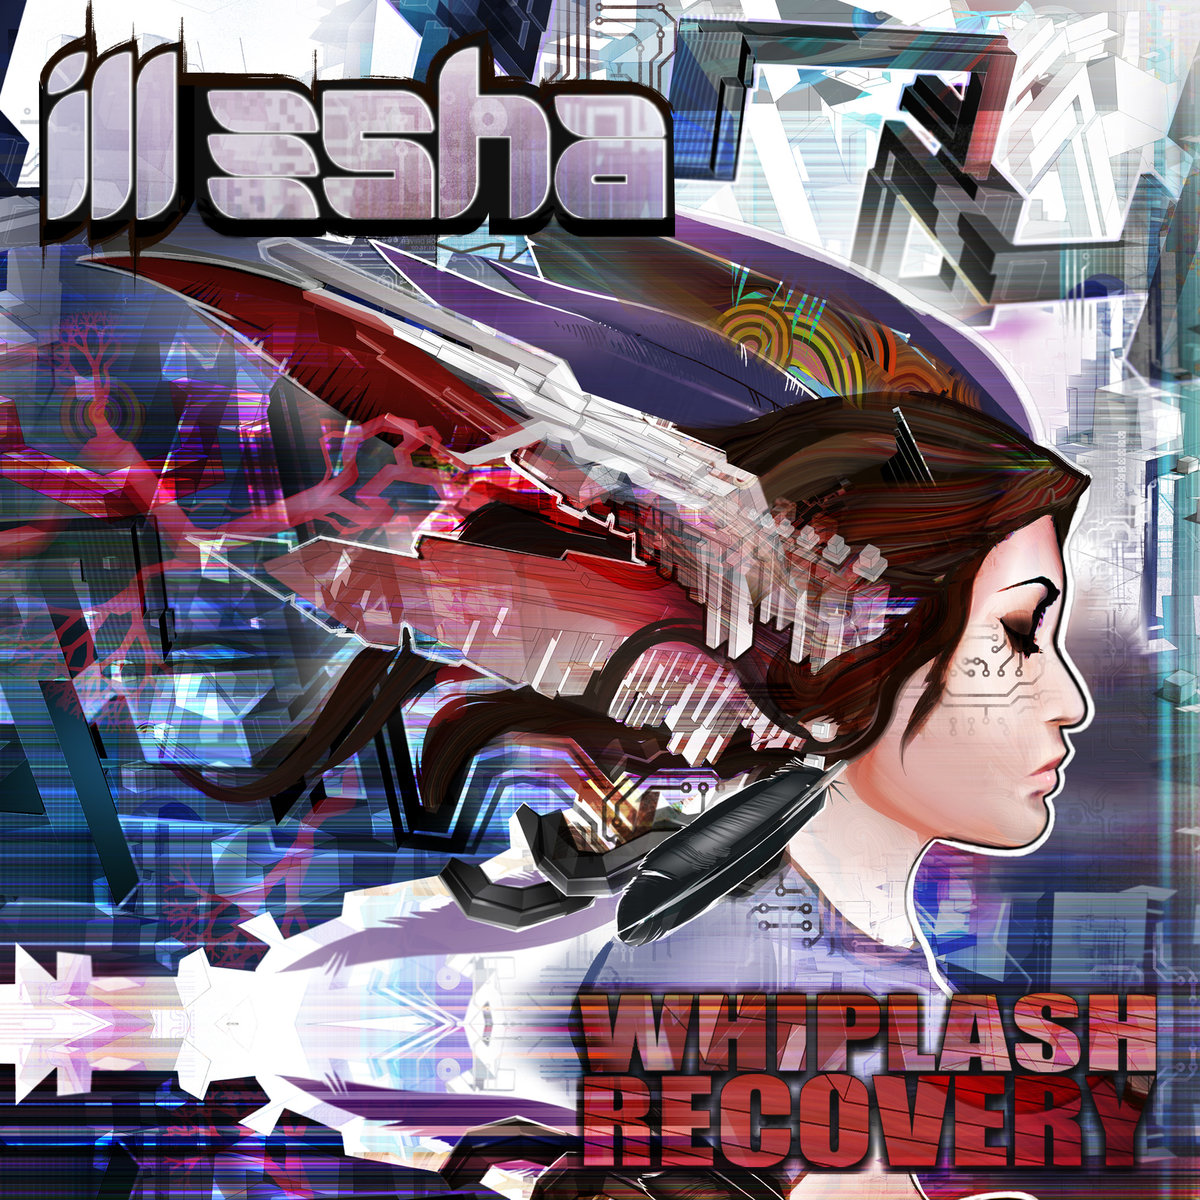 ill-esha - Razor Sharp @ 'Whiplash Recovery' album (california, denver)